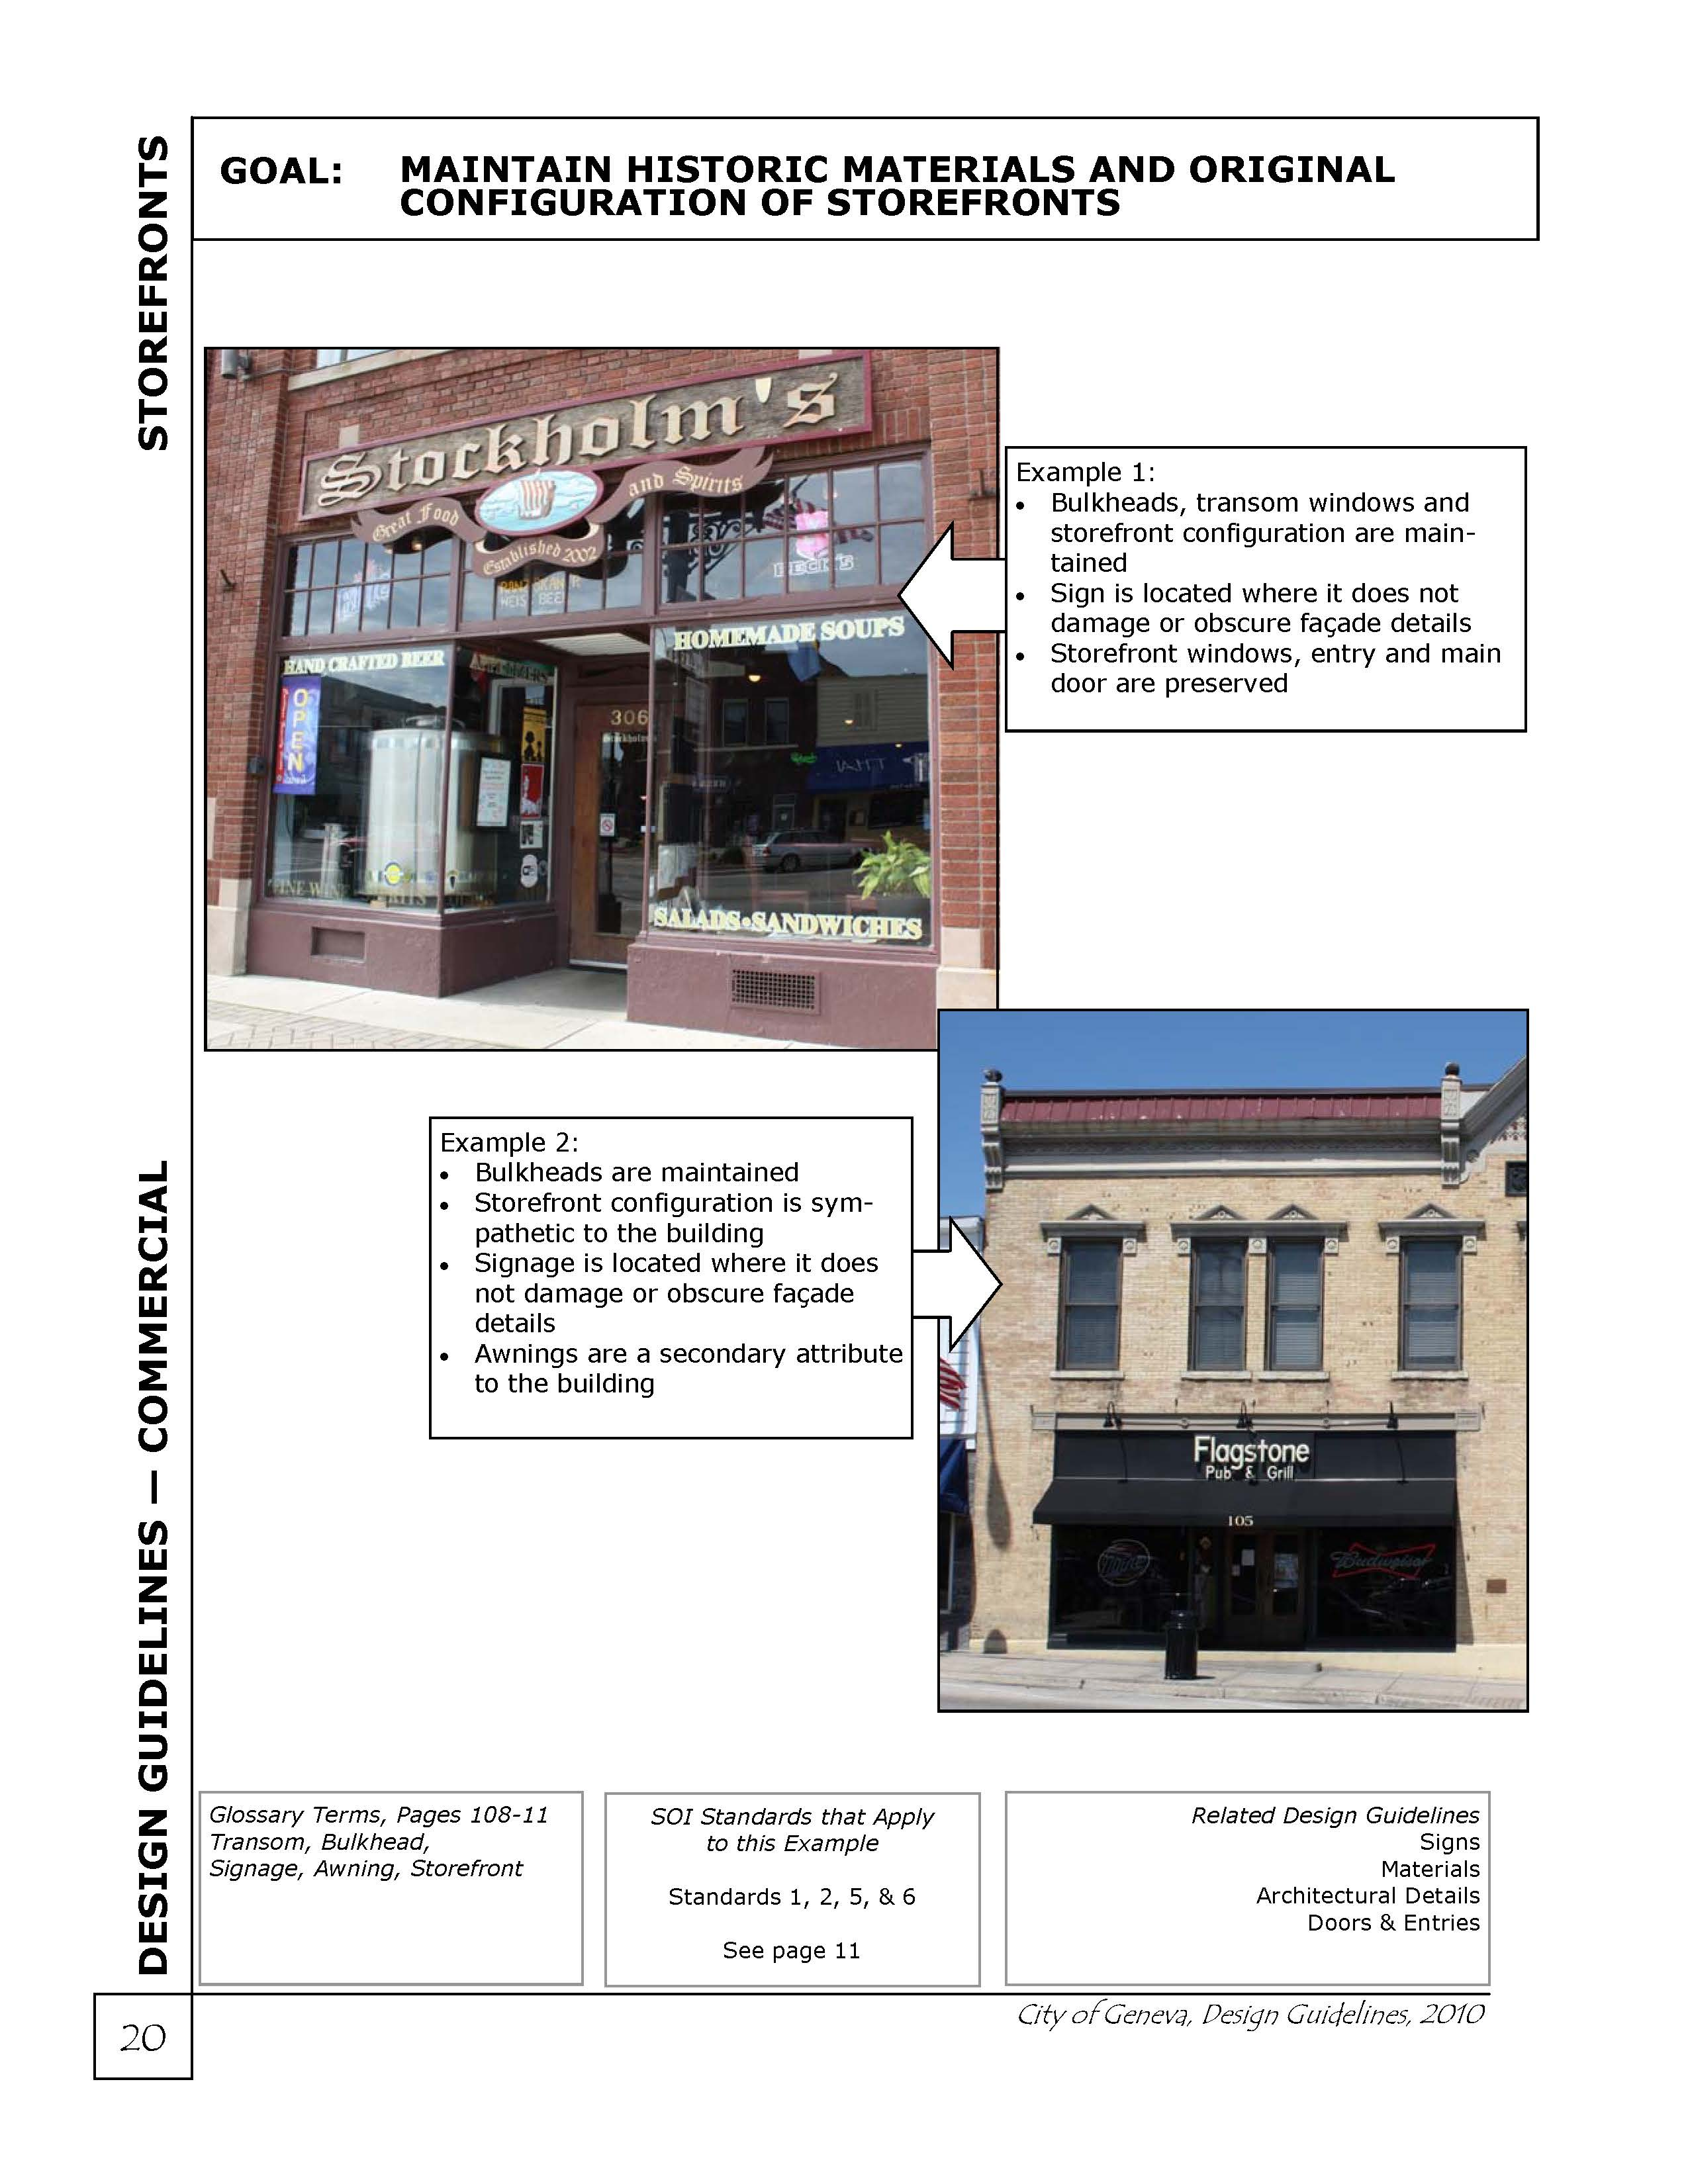 Design Guidelines for Historic Properties_Page_022.jpg